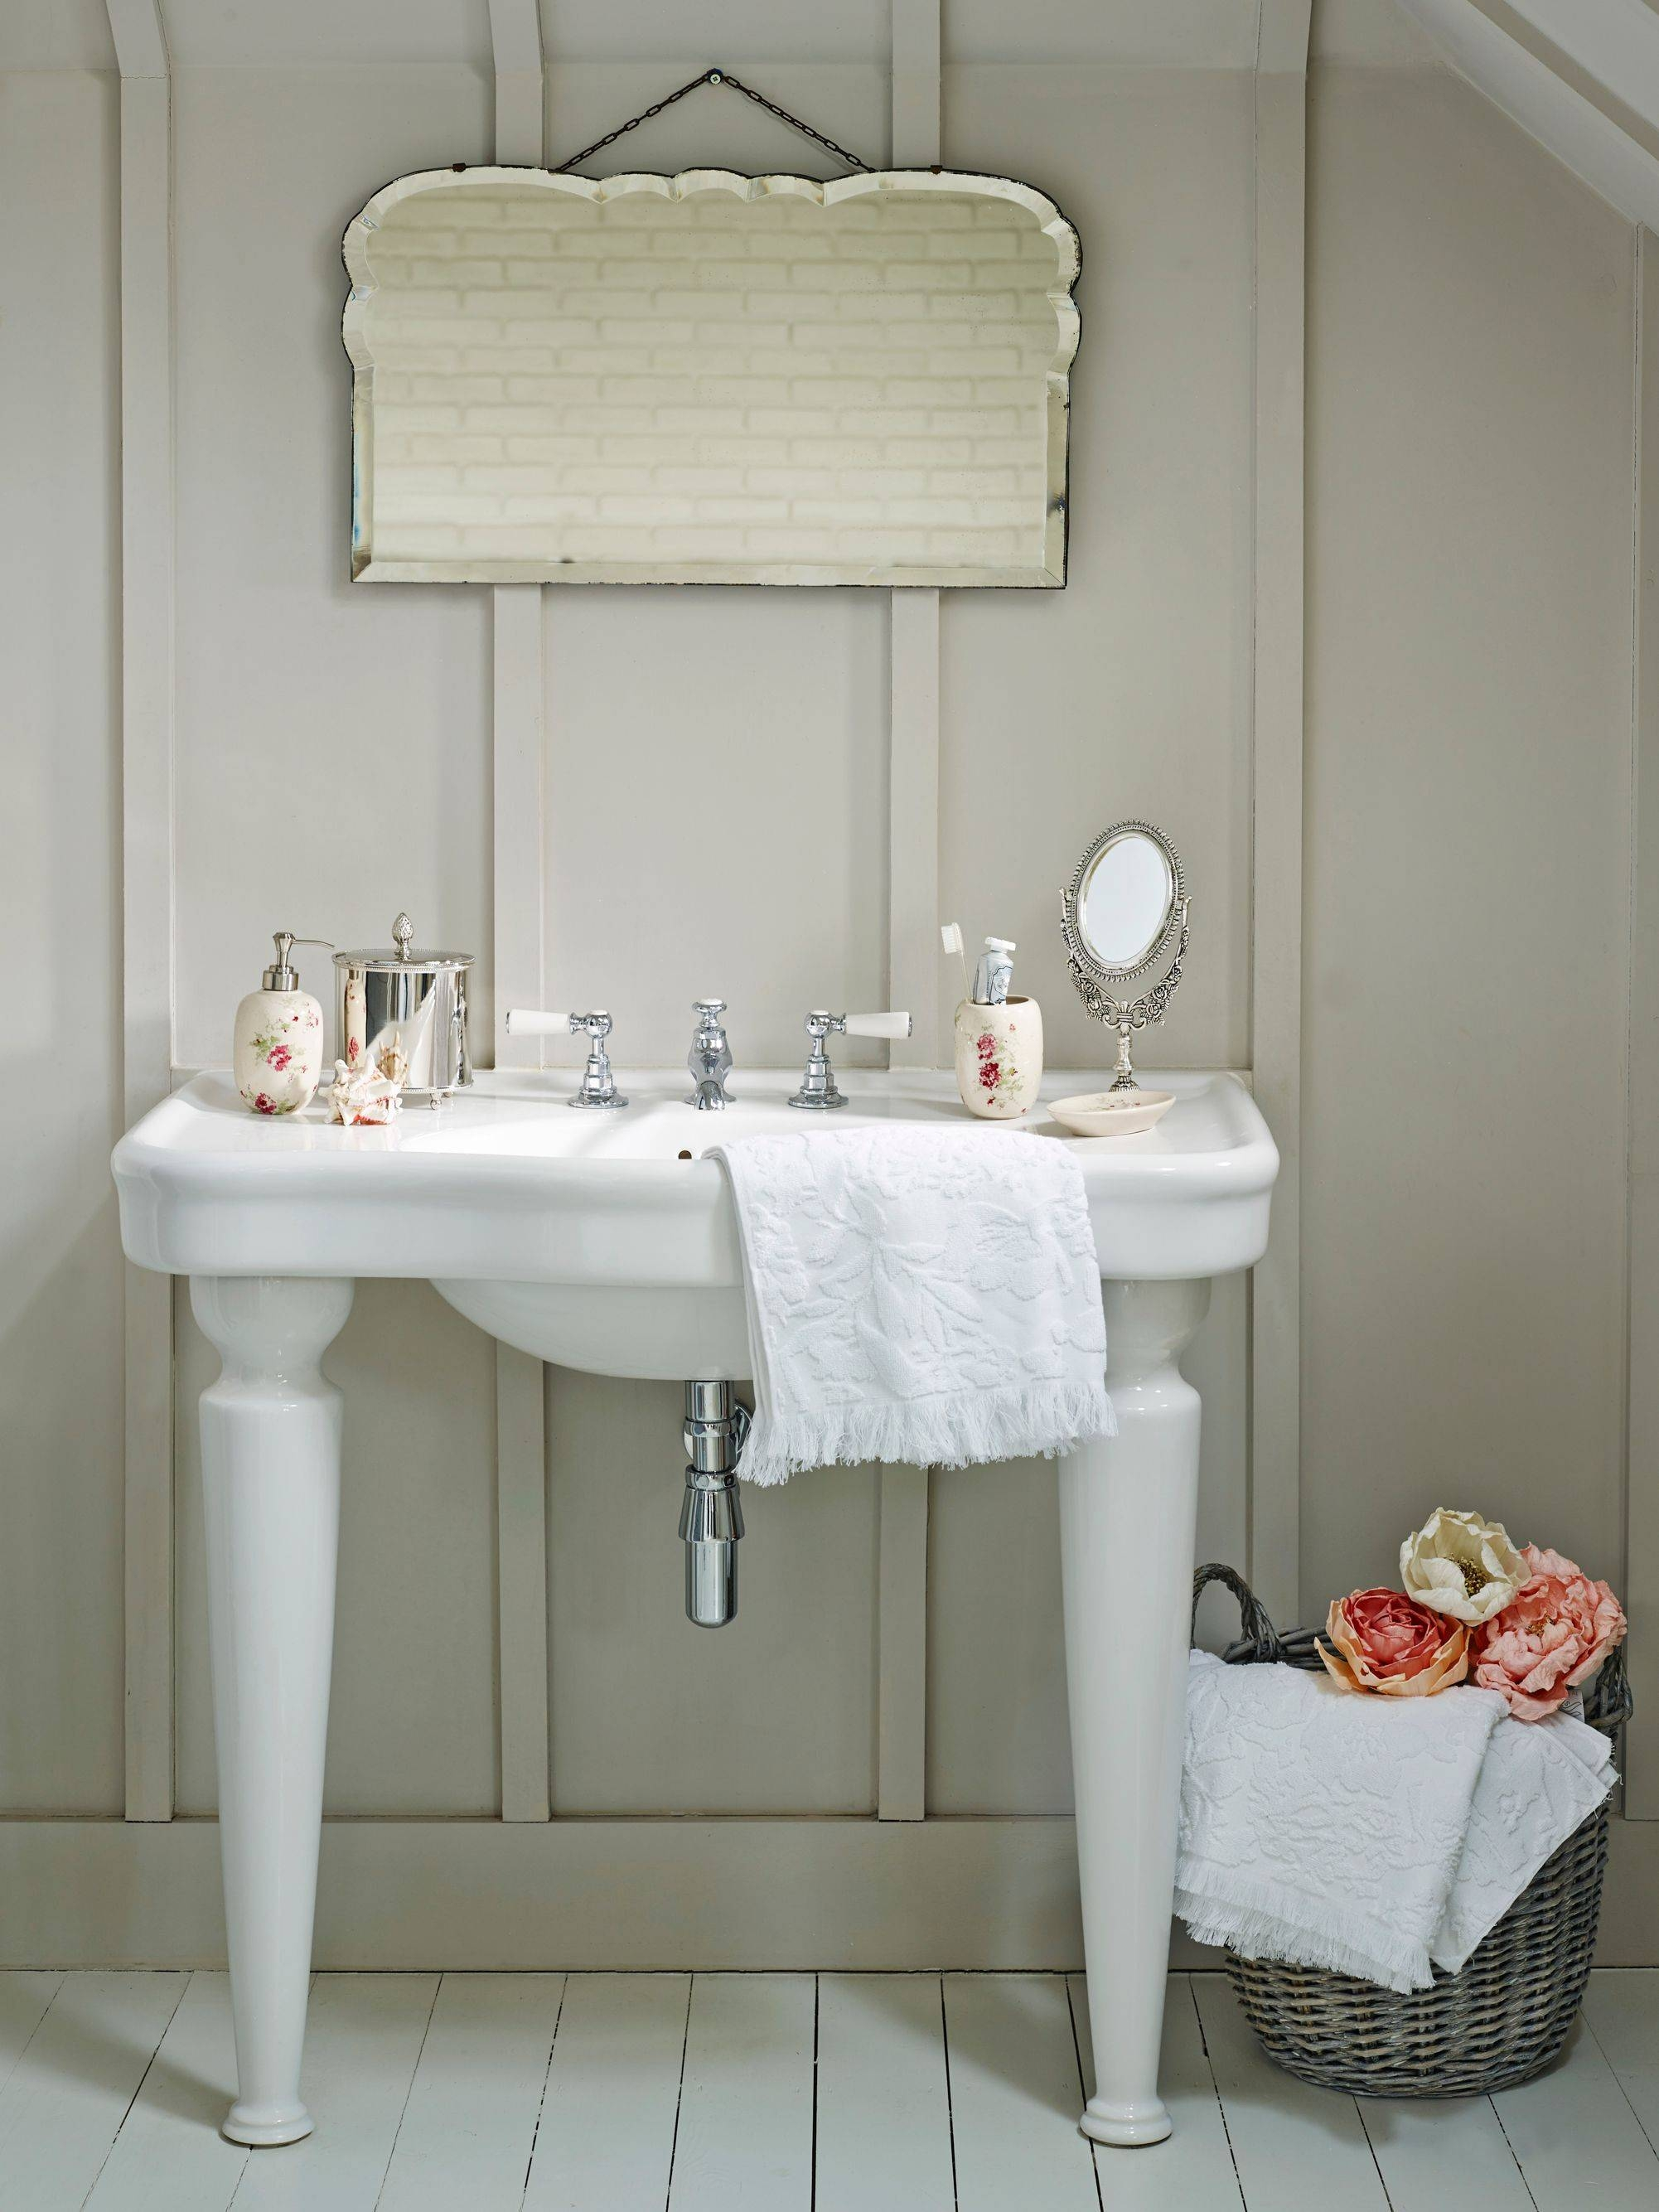 Bright Inspiration Shabby Chic Bathroom Mirror Graphicdesigns Co Pertaining To Shabby Chic Bathroom Mirrors (View 4 of 15)